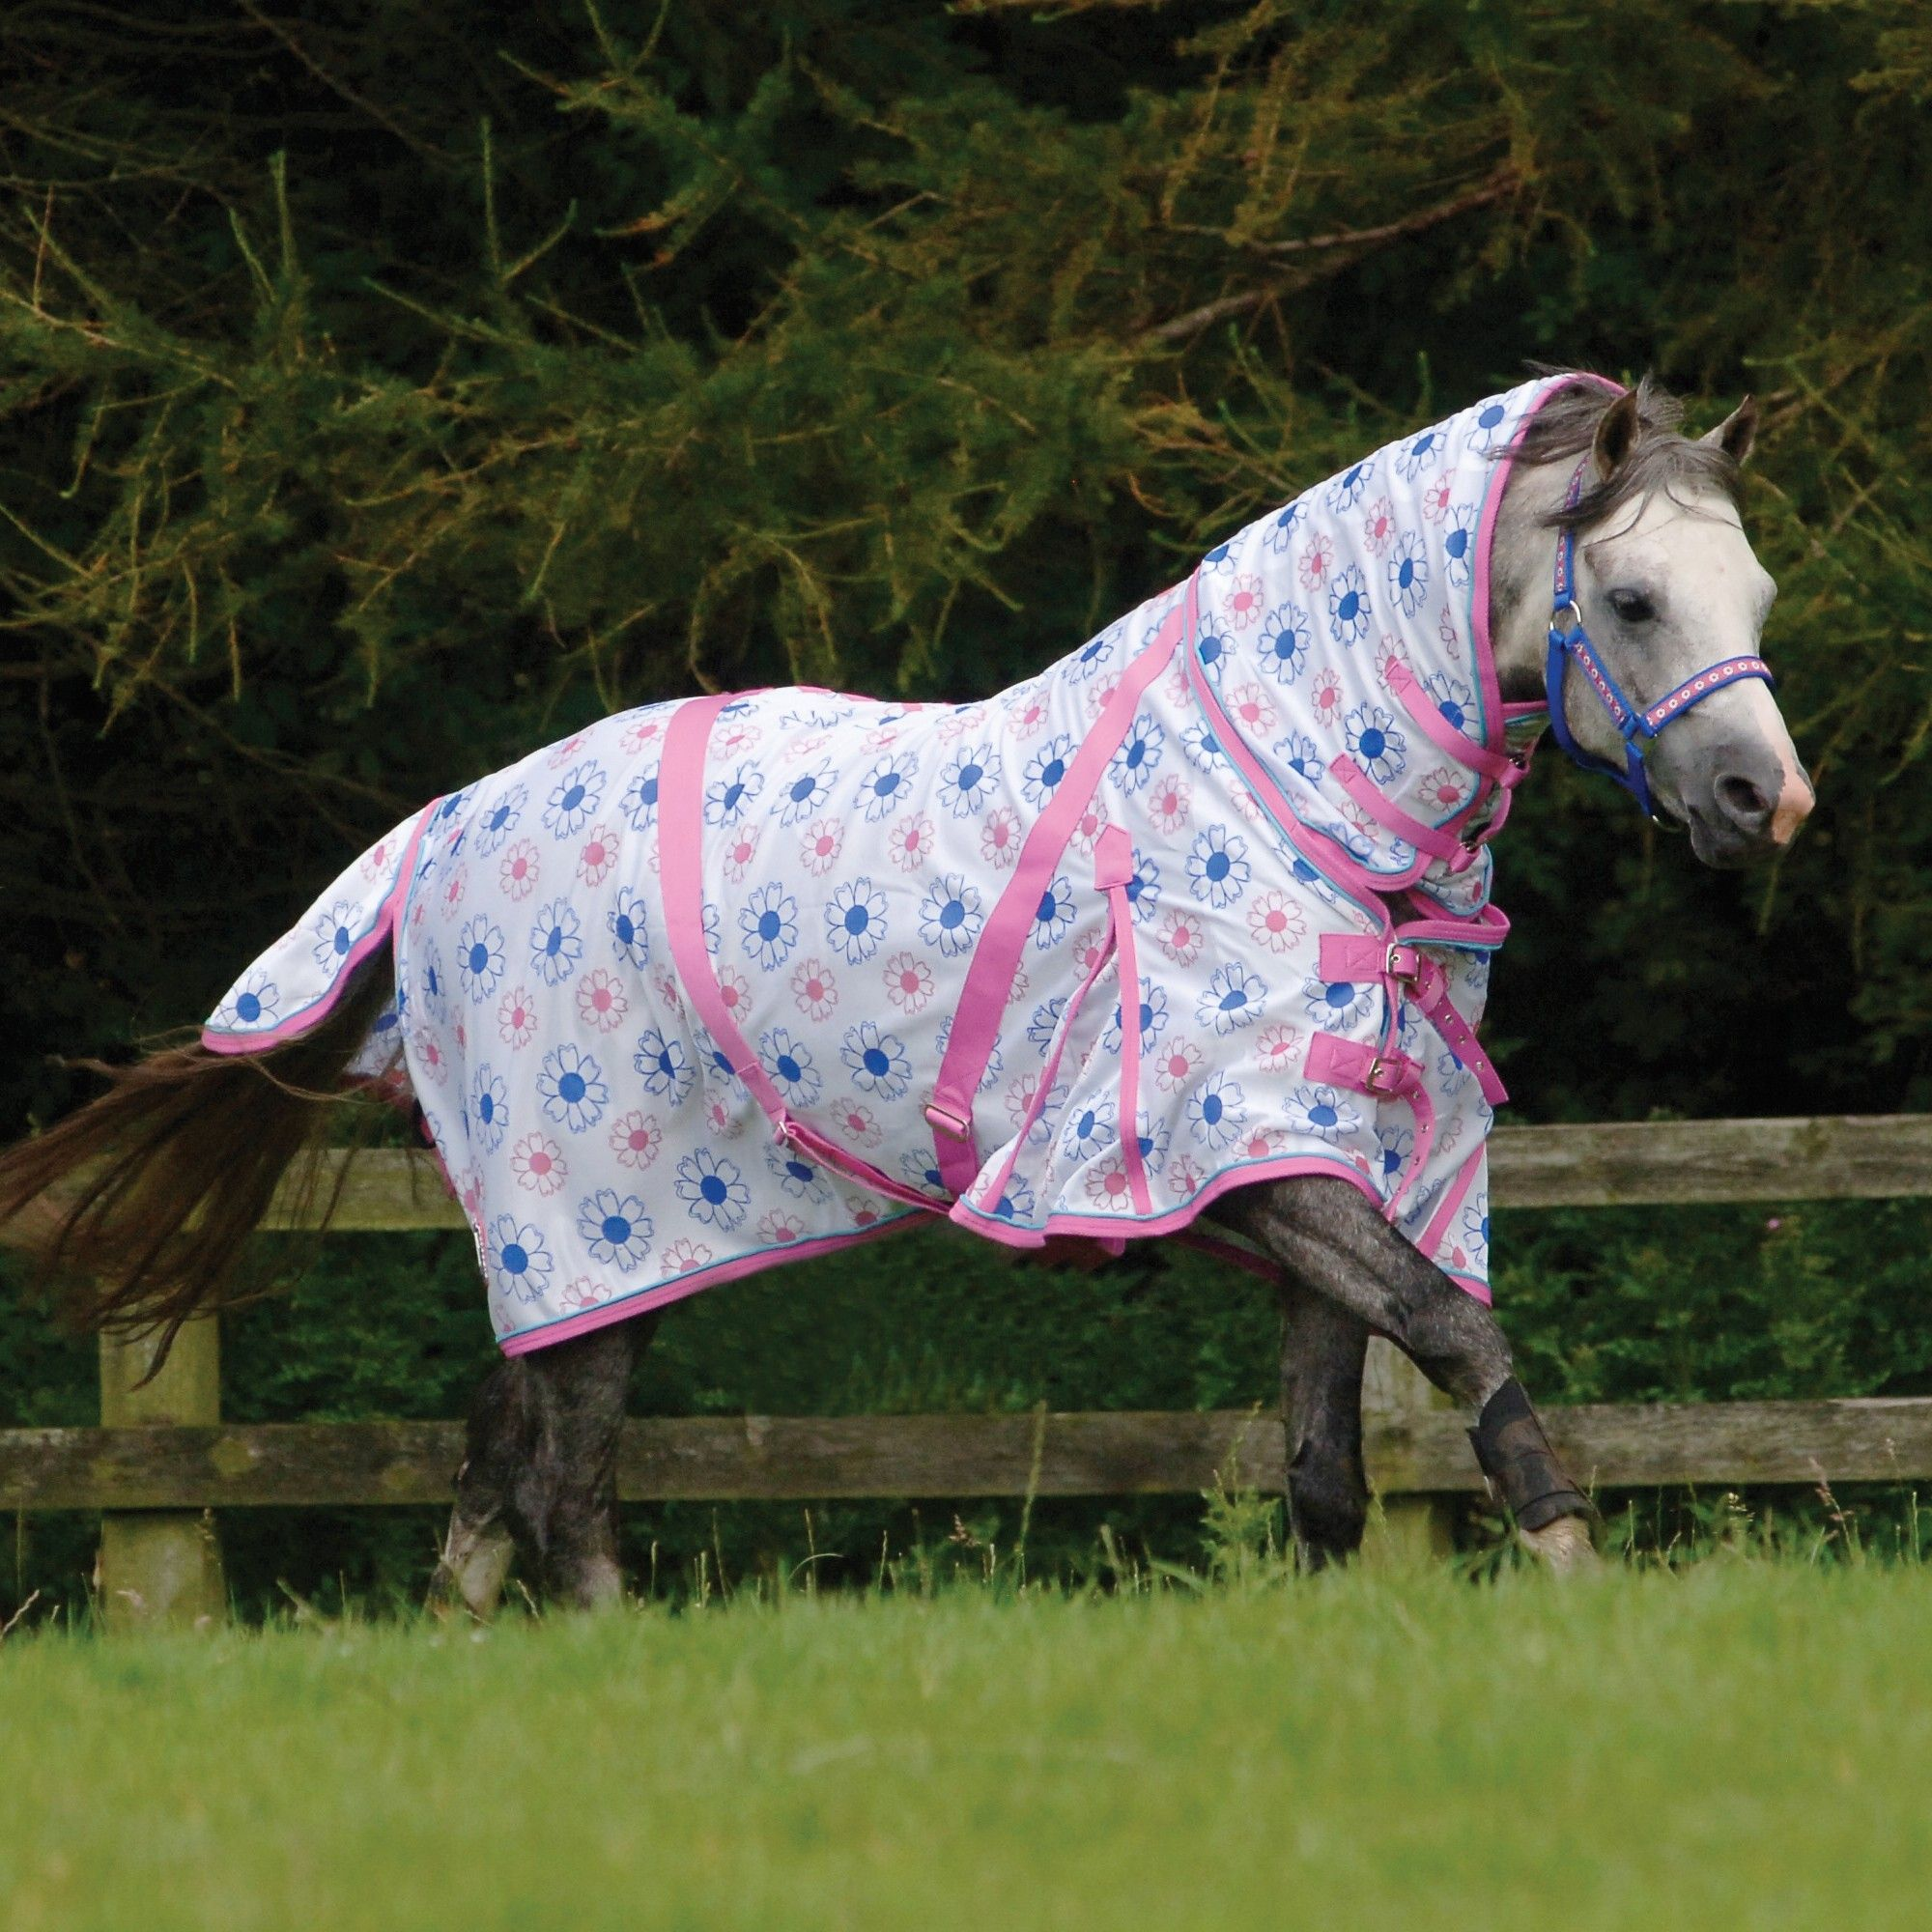 Cottage Craft Pony Fly Mesh Rug This Colourful Sheet Has Built In Design